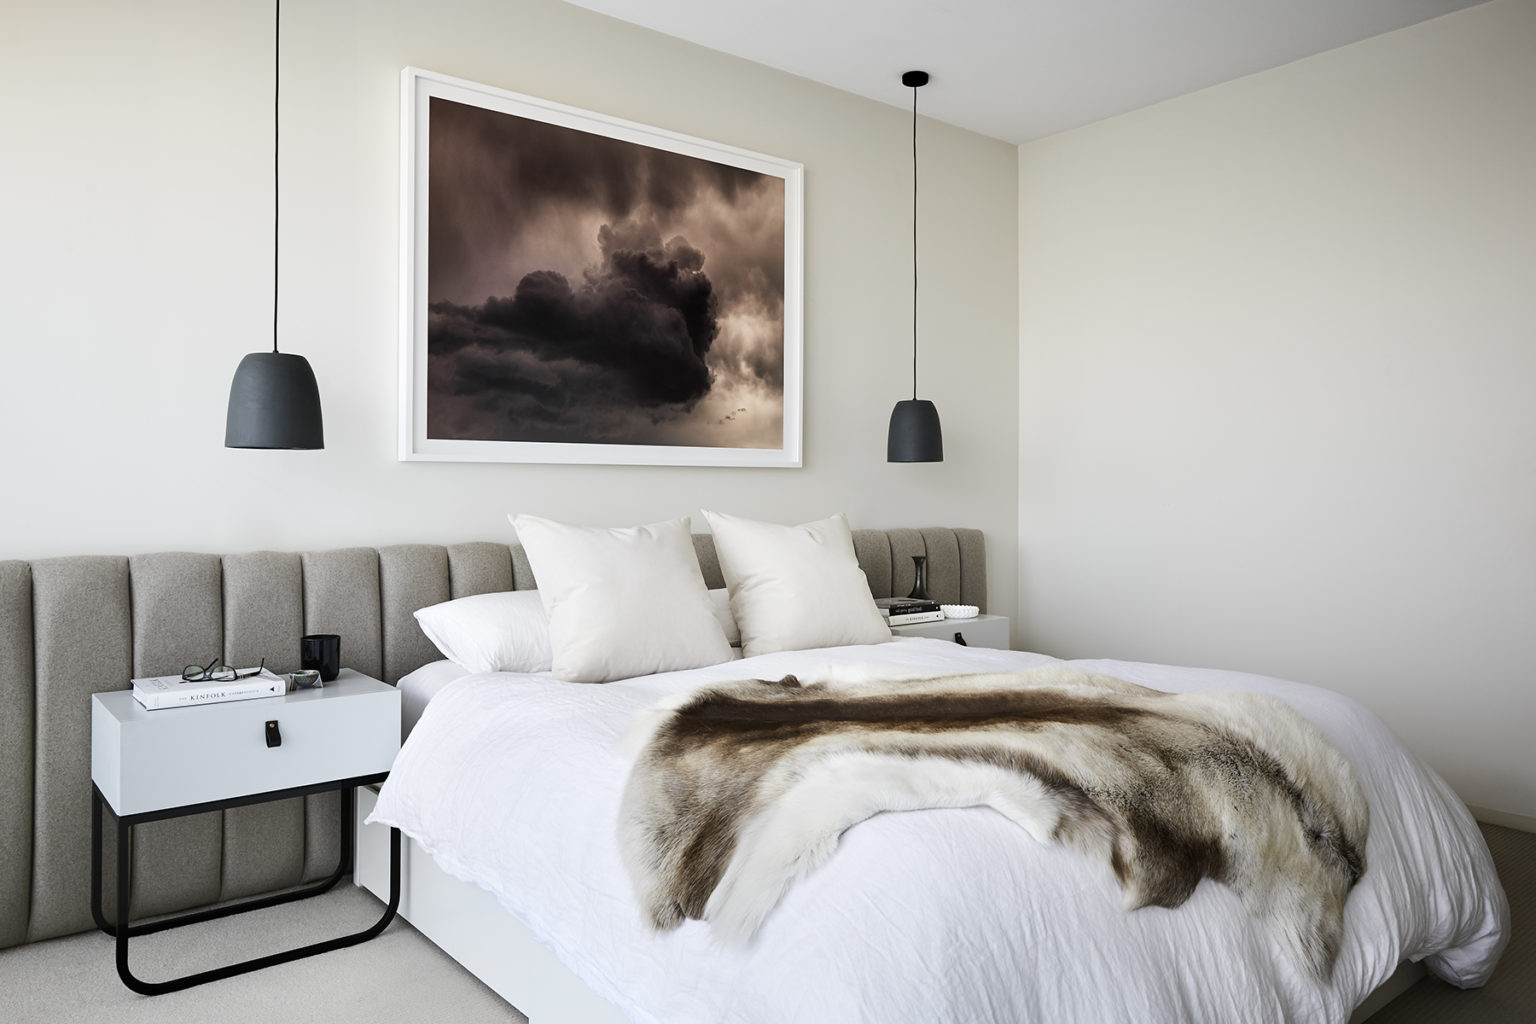 bedroom with a painting on the wall and a large bed and fur rug on top